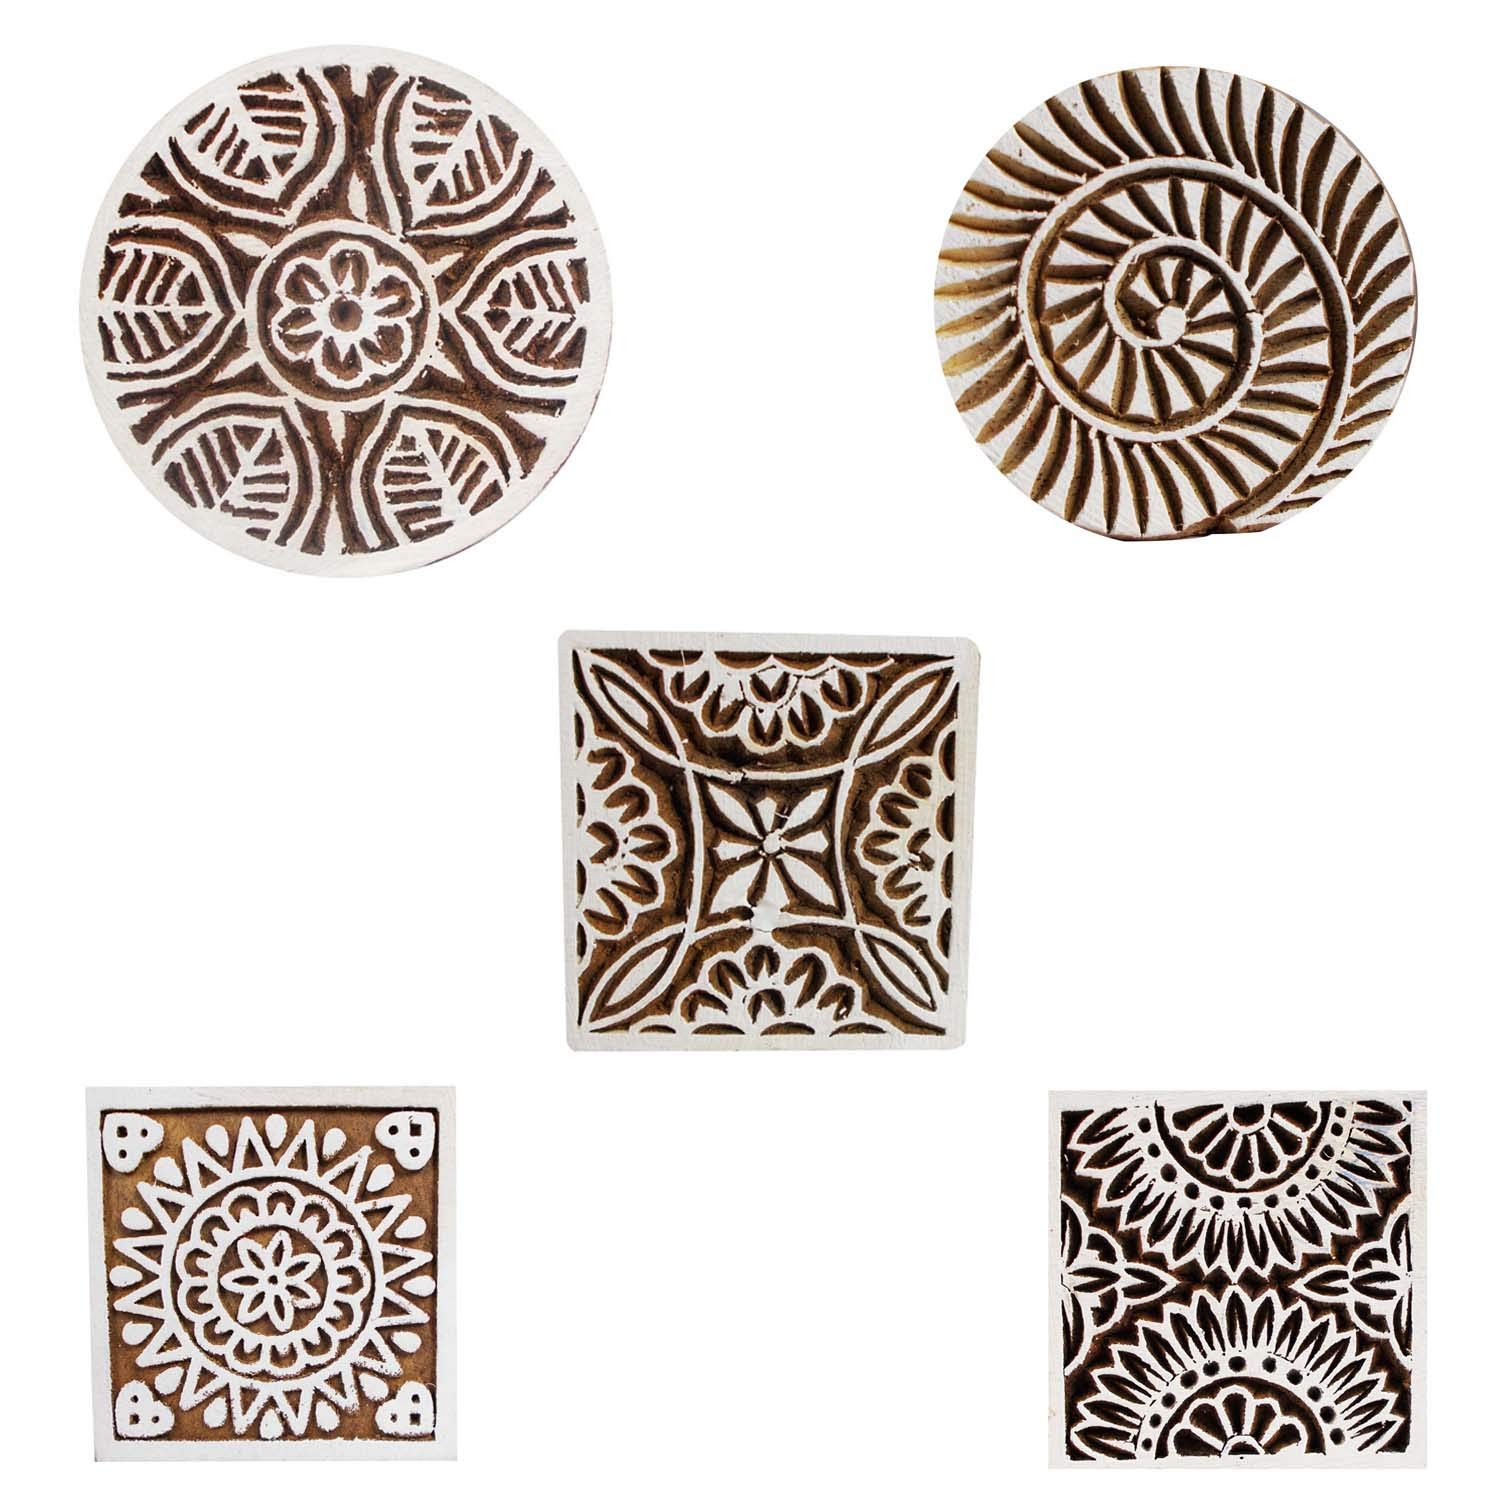 Printing Block Square and Round Wooden Set of 5 Textile Apparel Fabric Scrapbook Clay Heena Tattoo Craft Stamps Blocks